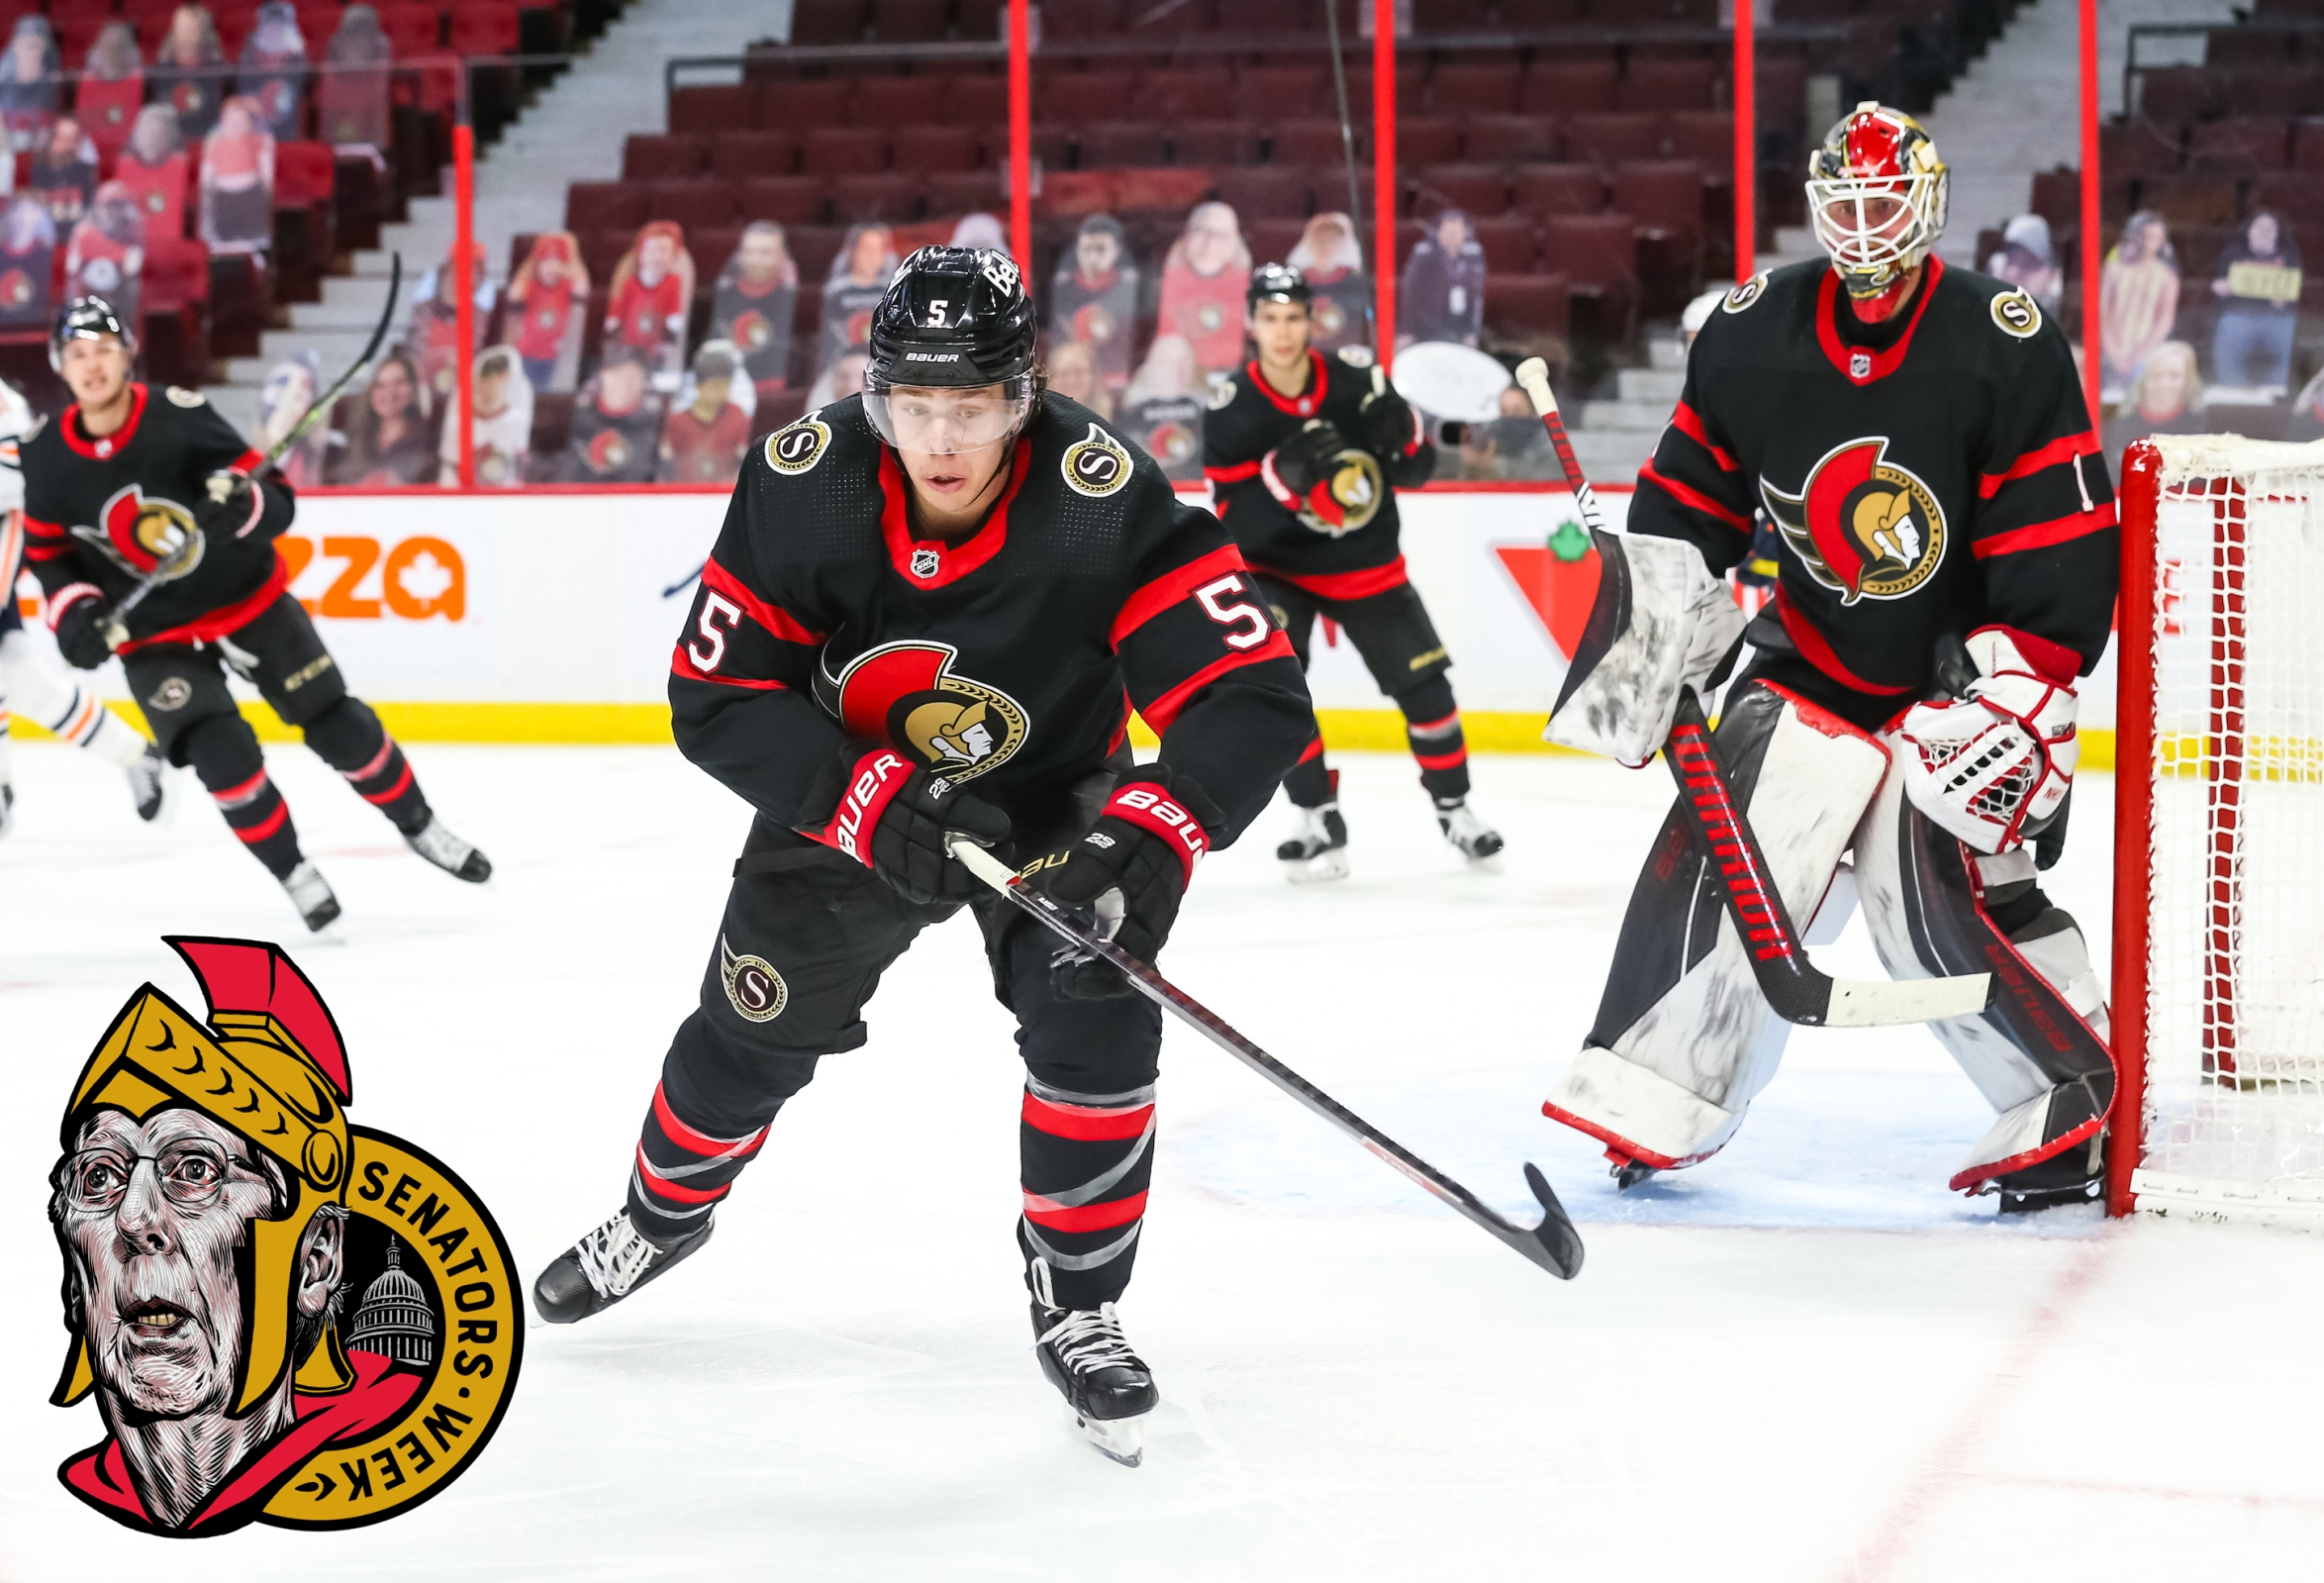 Mike Reilly #5 of the Ottawa Senators skates against the Edmonton Oilers at Canadian Tire Centre on April 7, 2021 in Ottawa, Ontario, Canada.